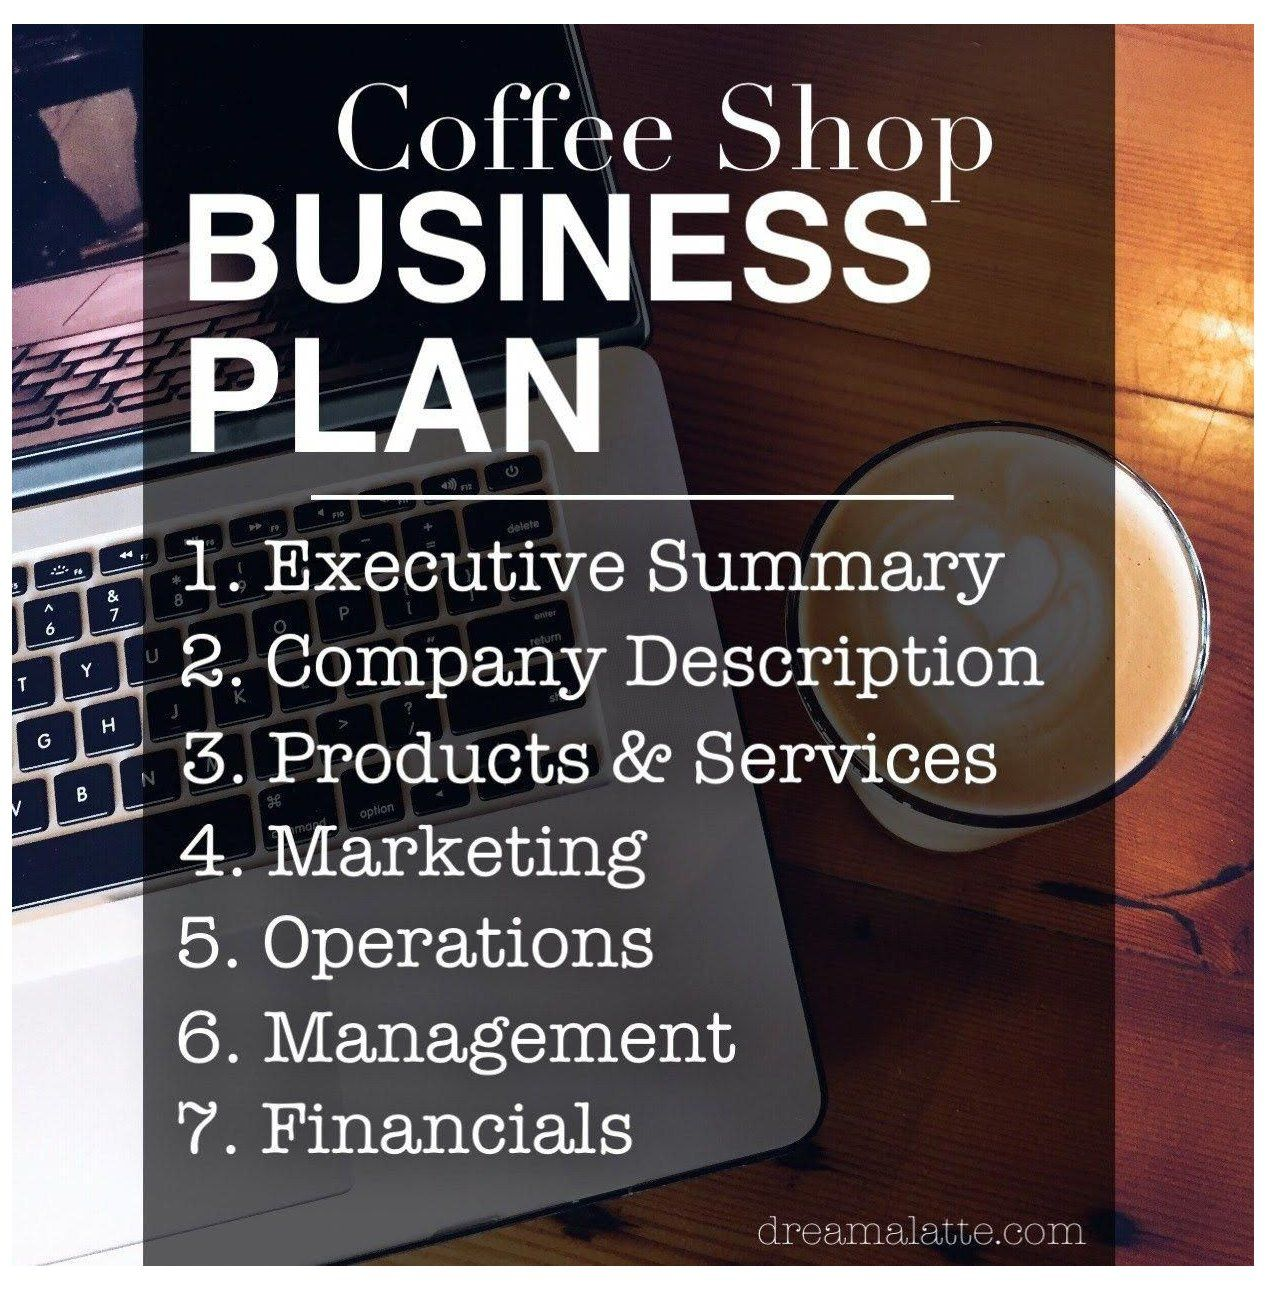 The Coffee Shop Business Plan Coffee Shop Plan Writing A Coffee Shop Business Plan Ser Coffee Shop Business Coffee Shop Business Plan Starting A Coffee Shop